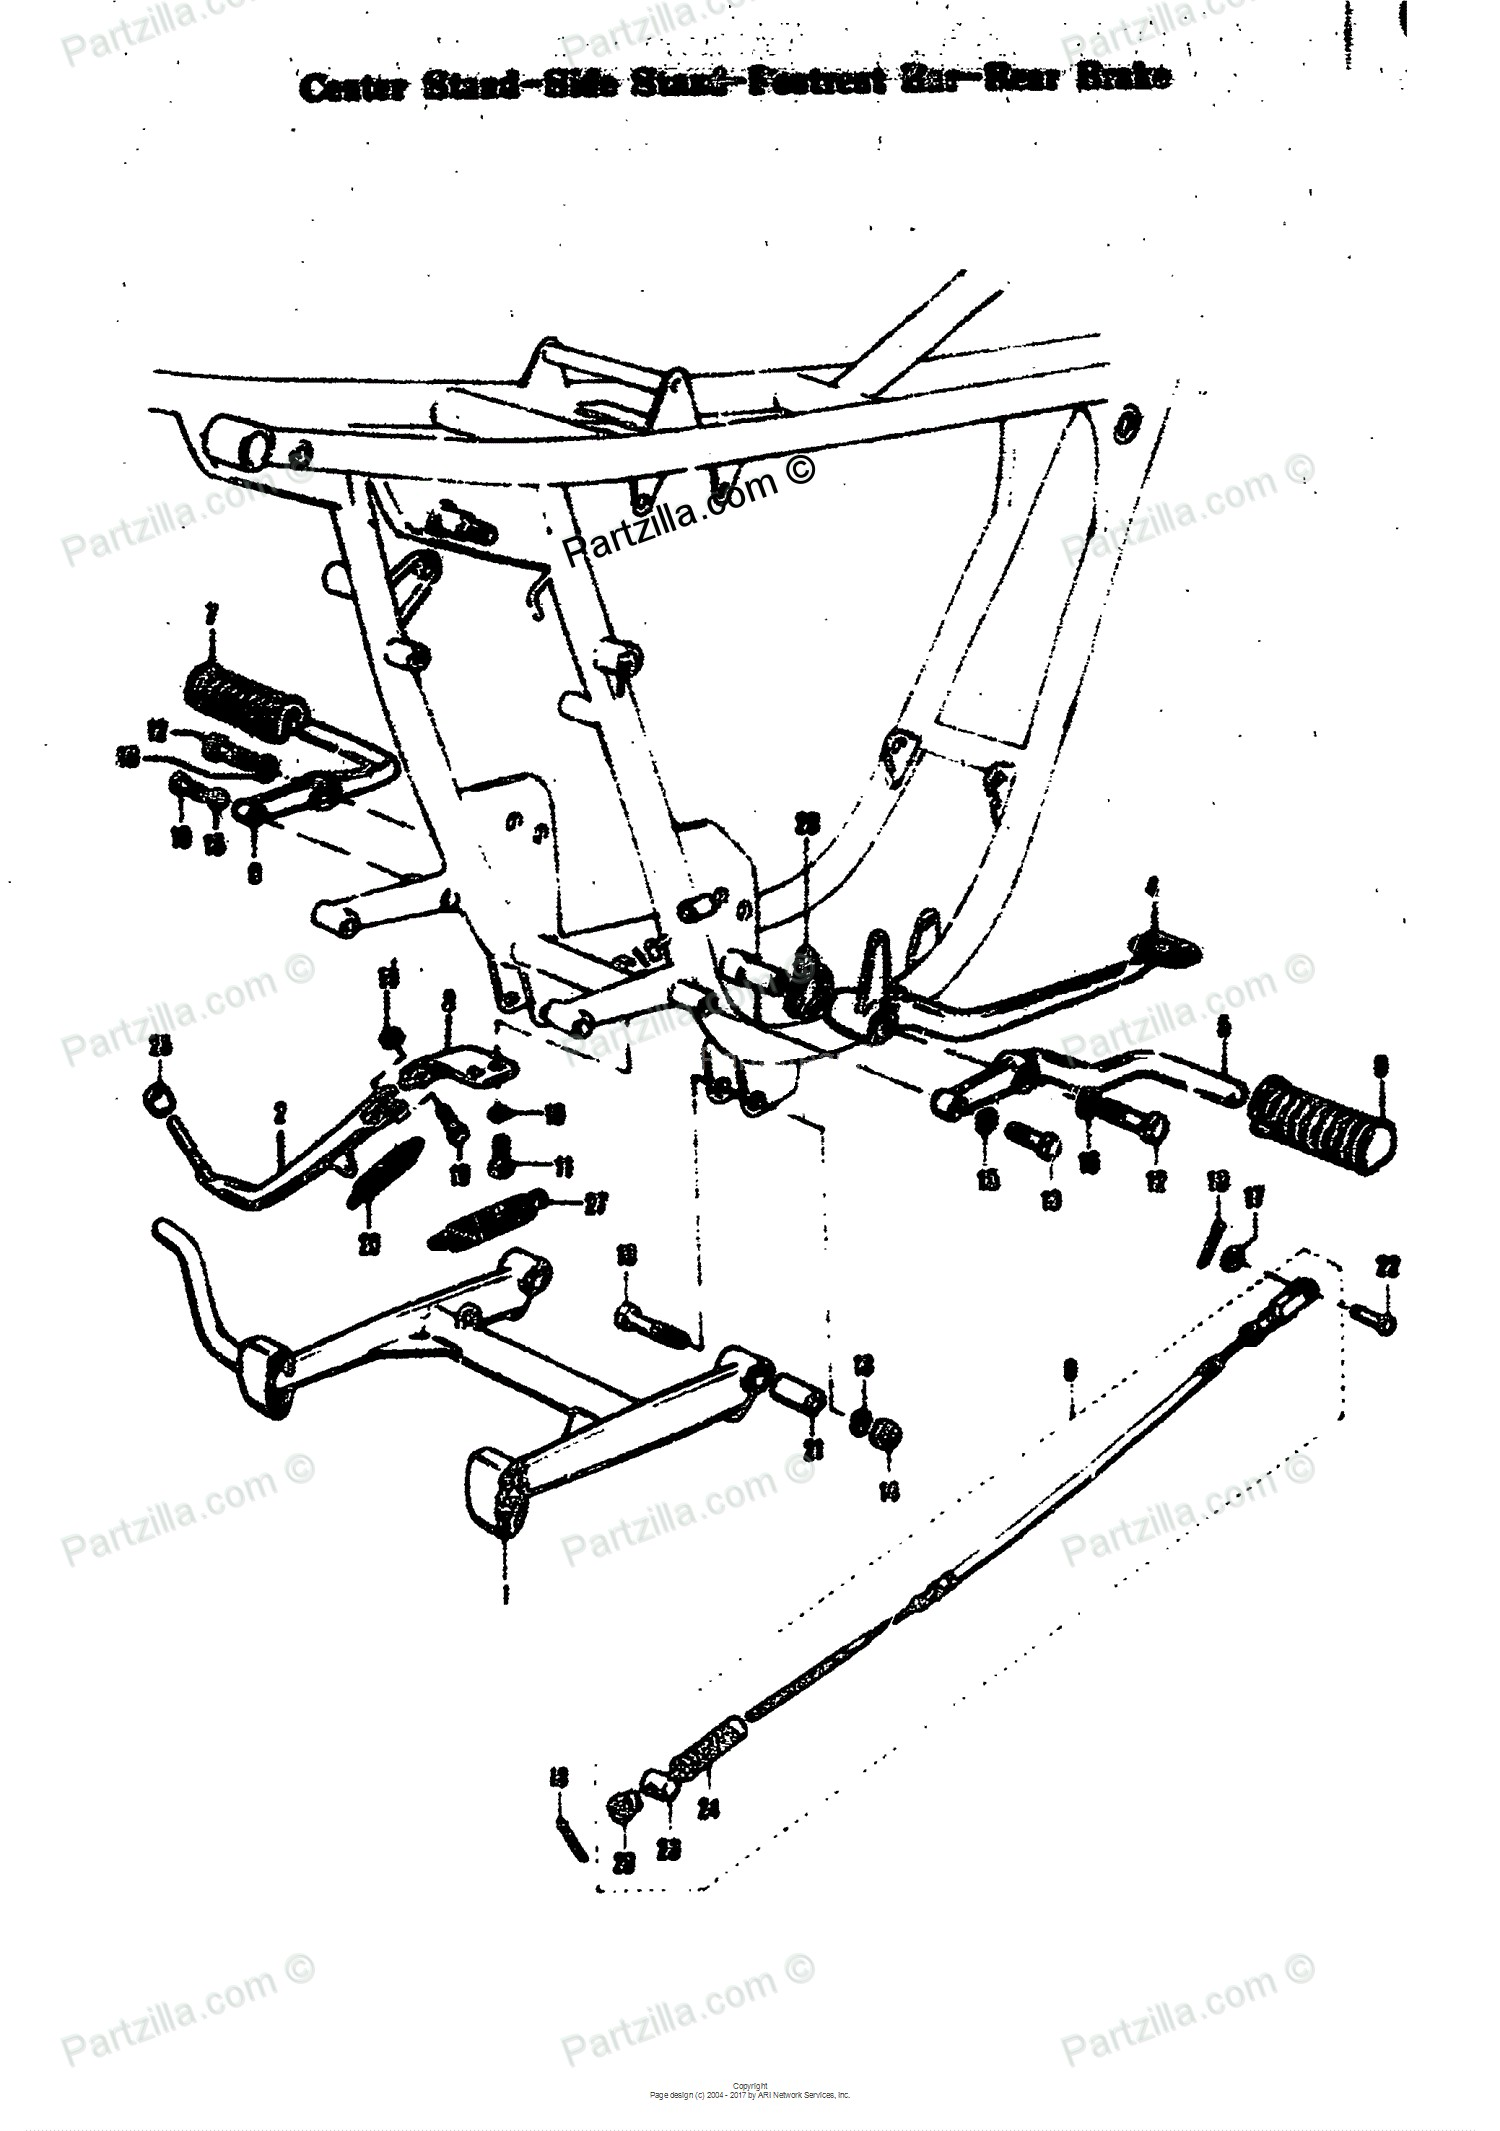 Rear Brake Parts Diagram Suzuki Motorcycle 1969 Oem Parts Diagram for Center Stand Side Stand Of Rear Brake Parts Diagram